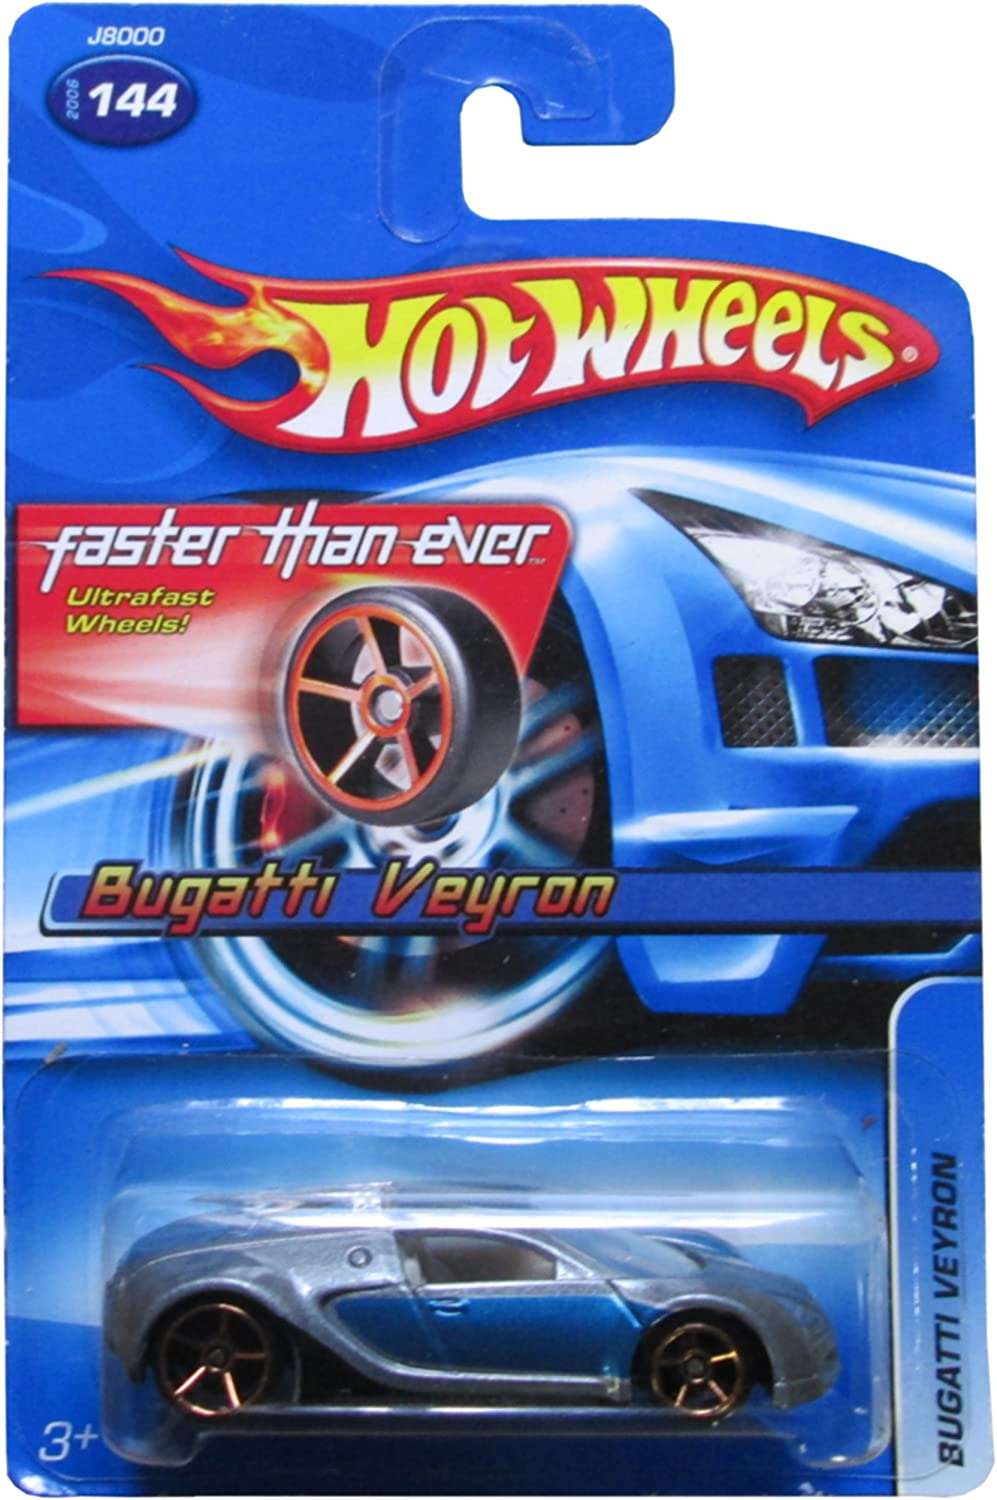 Hot Wheels 2006-144 Bugatti Veyron Blue/Silver FTE Faster Than Ever 1:64 Scale GOLD 5SP Wheels